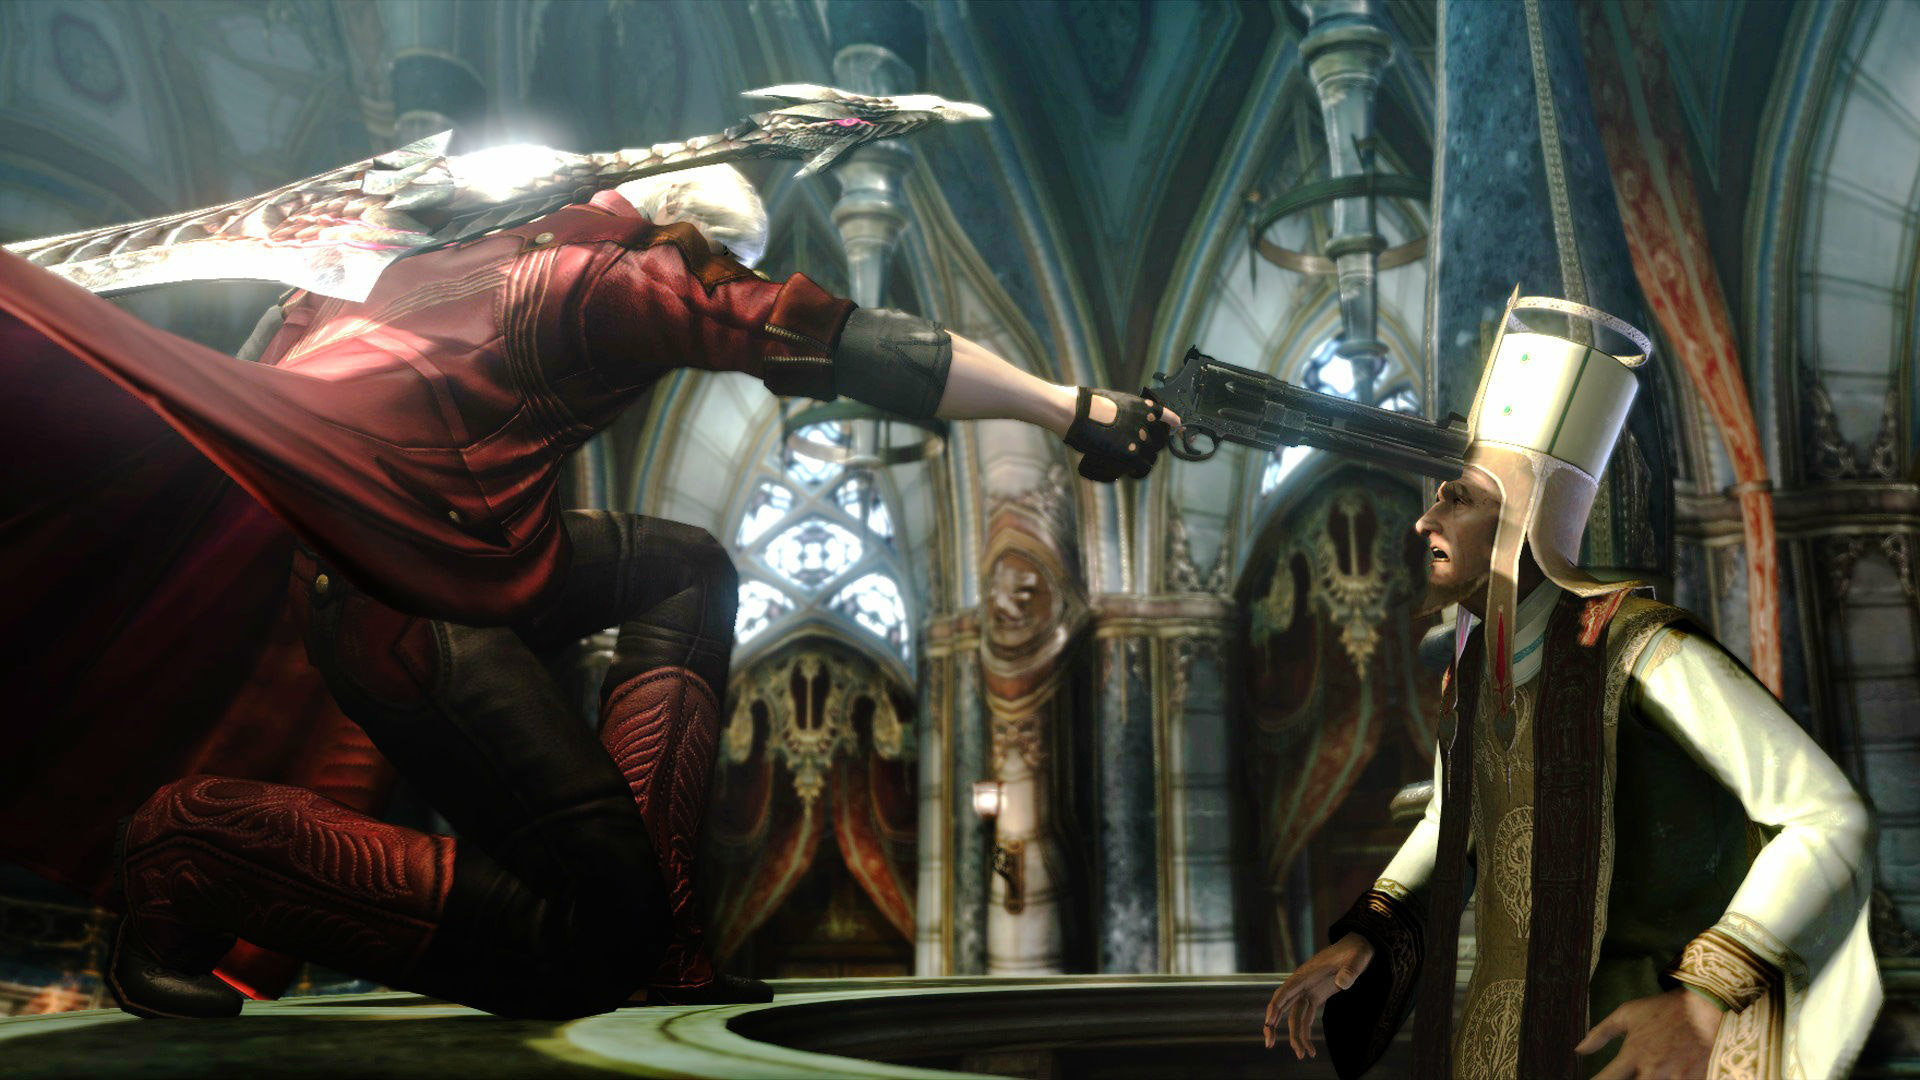 Free Devil May Cry 4 Wallpaper in 1920x1080